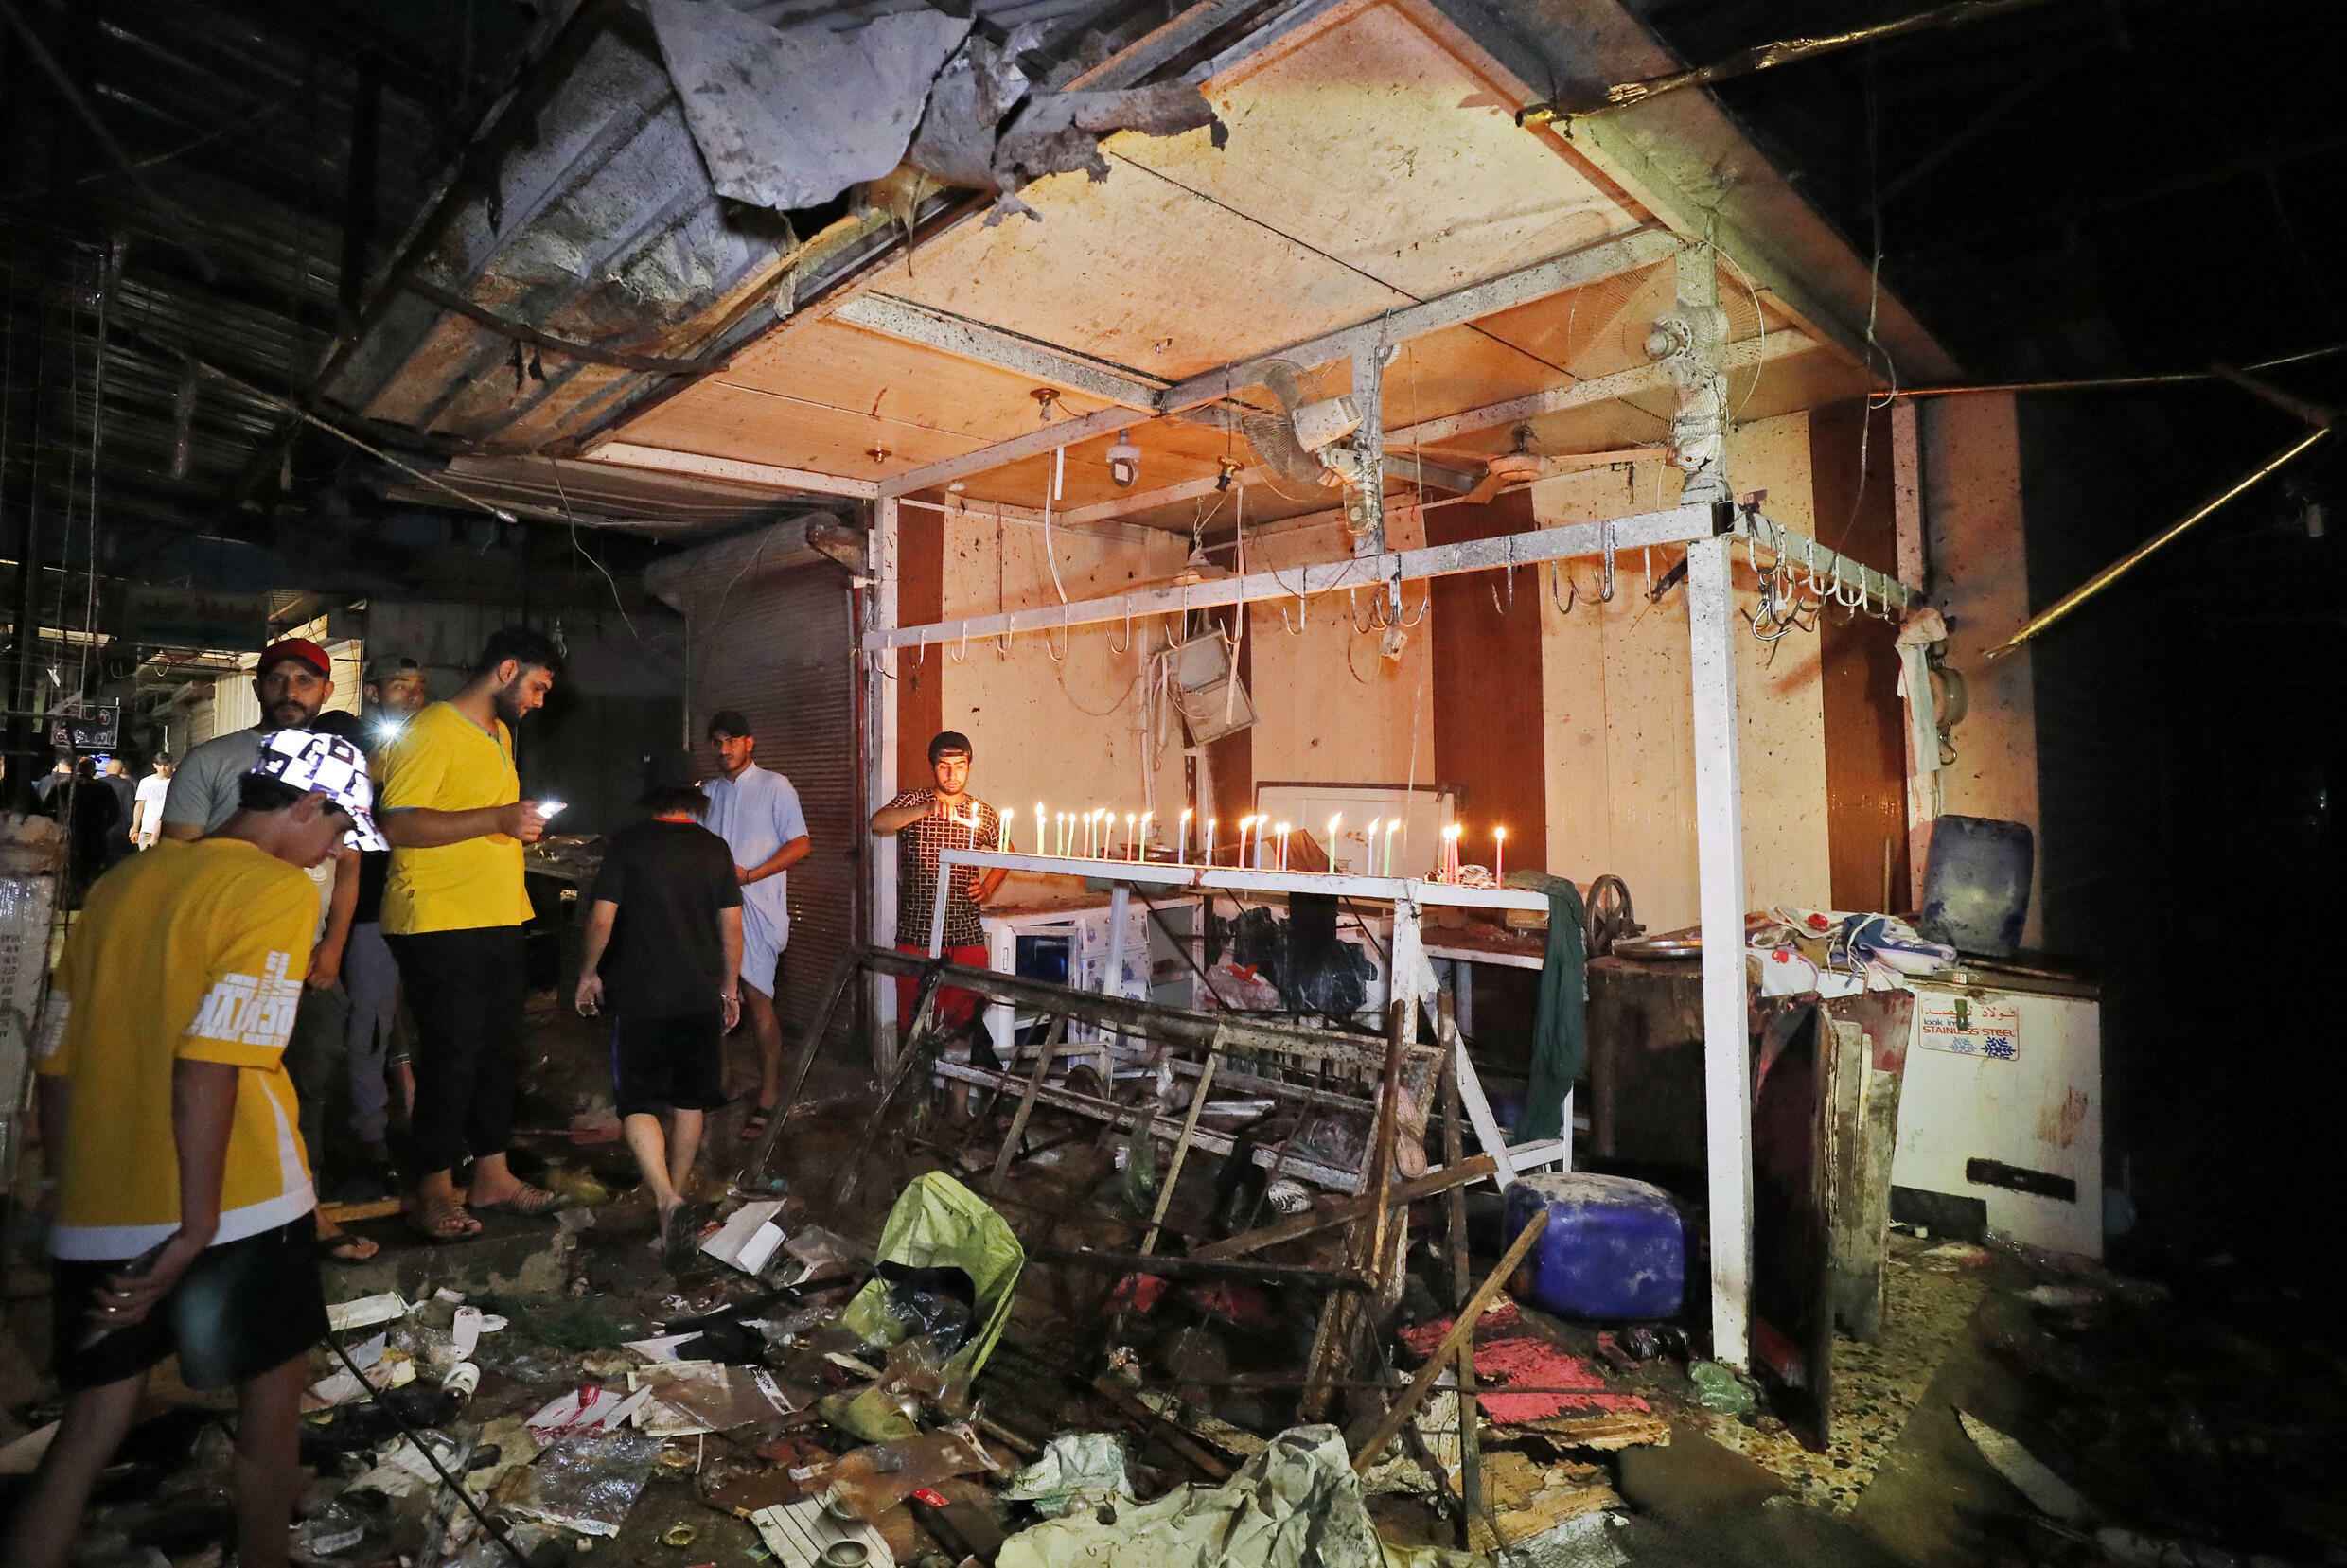 Iraqis light candles at the site of the explosion in a popular market in the mostly Shiite neighbourhood of Sadr City, east of Baghdad, on July 19, 2021